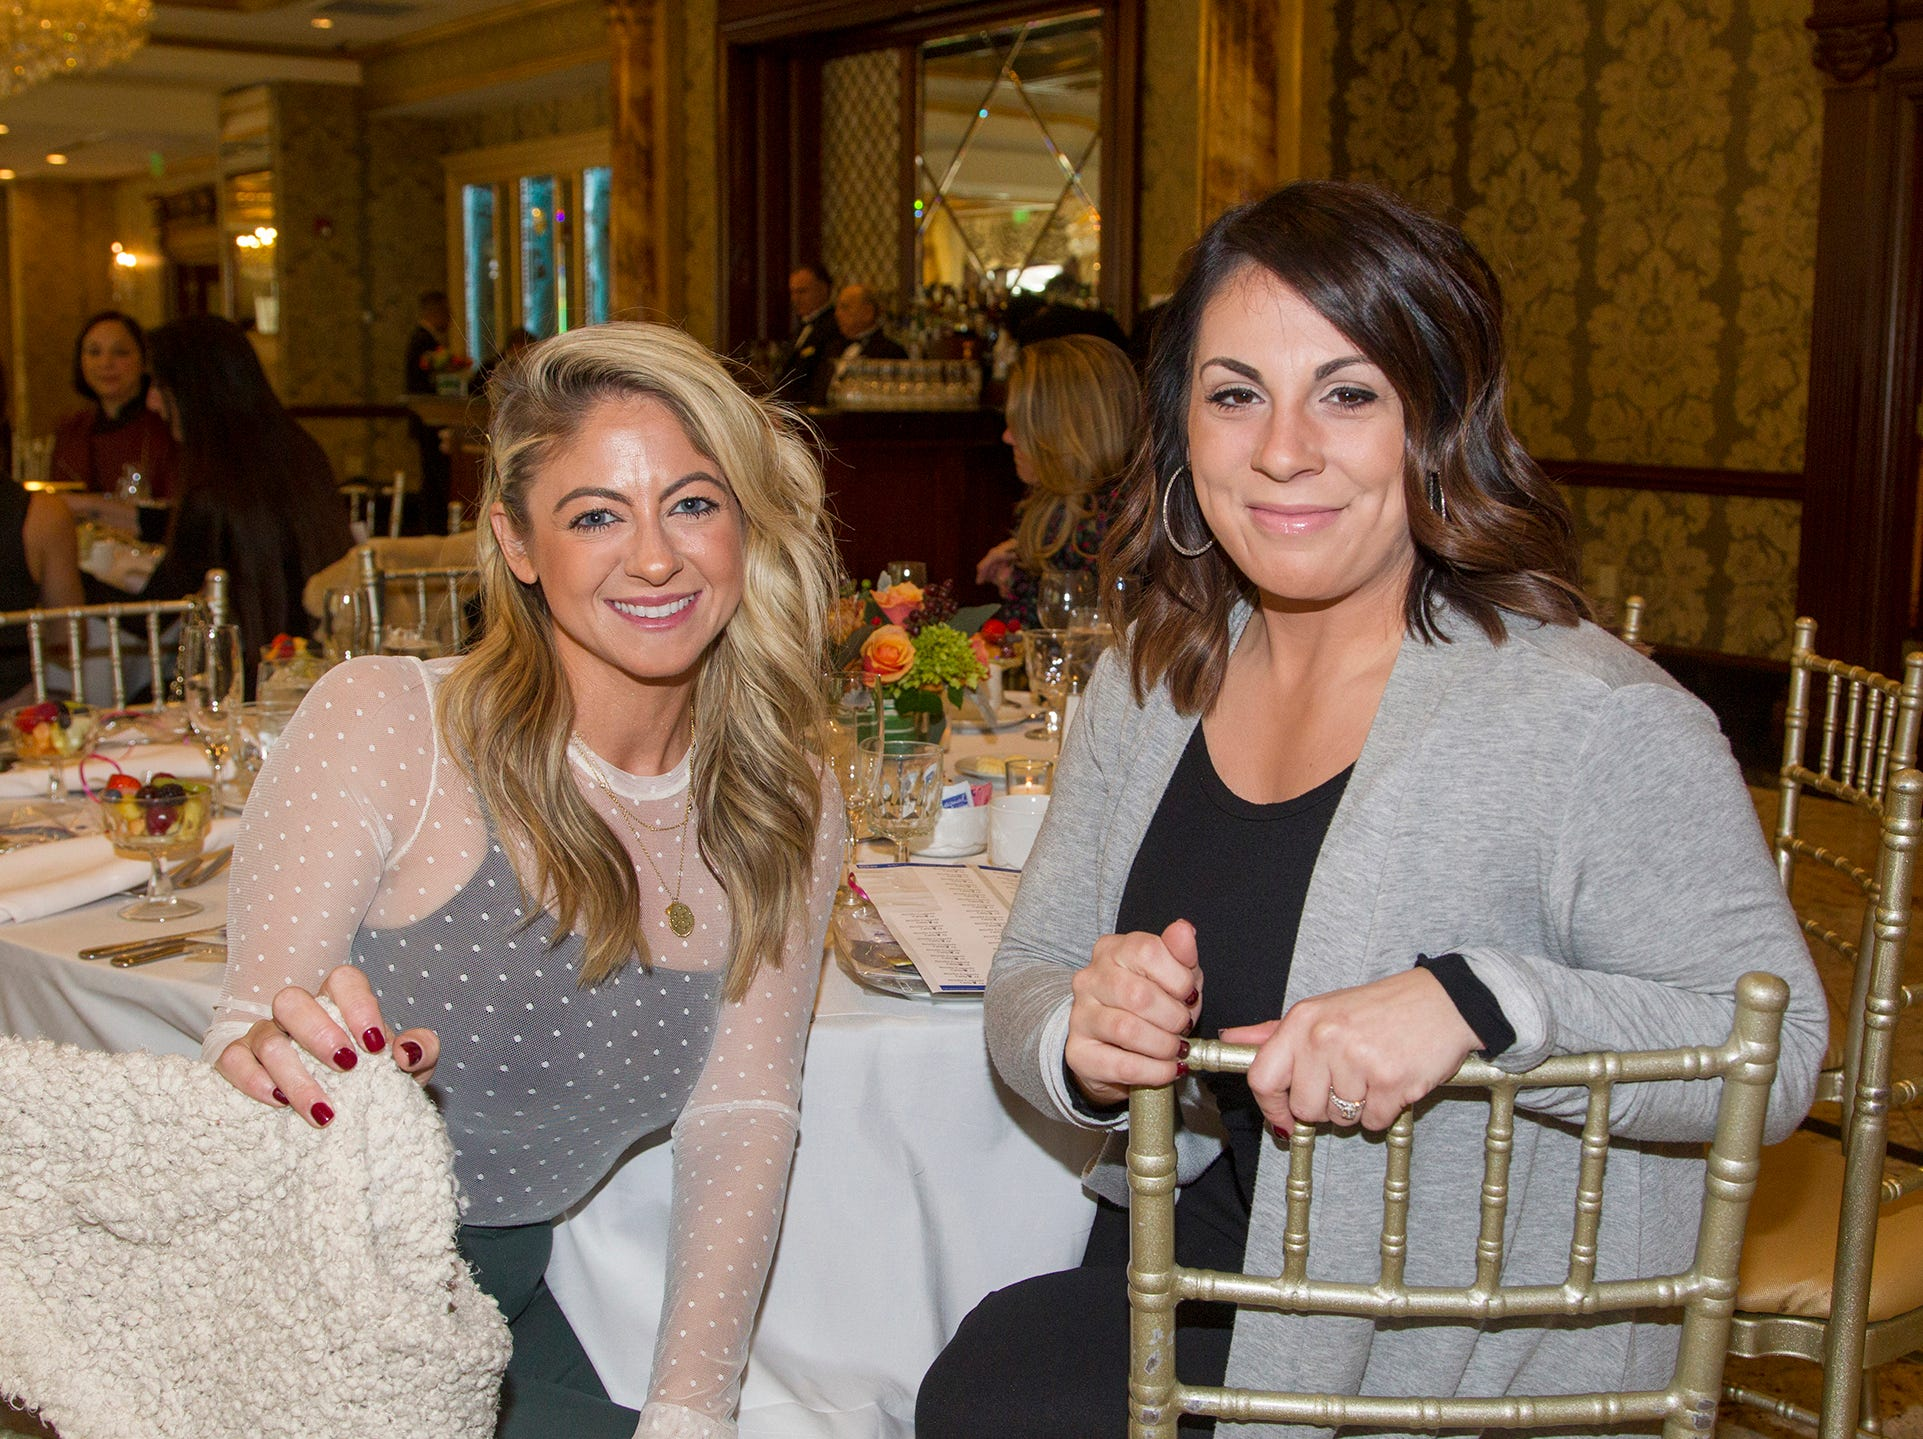 Tara Curcio, Brielle Coppla. Josephine's Garden, part of Hackensack Meridian Health, held its luncheon gala at Season's in Washington Township. The mission of this organization is to provide a place of respite, joy and hope to children battling cancer. 11/14/2018